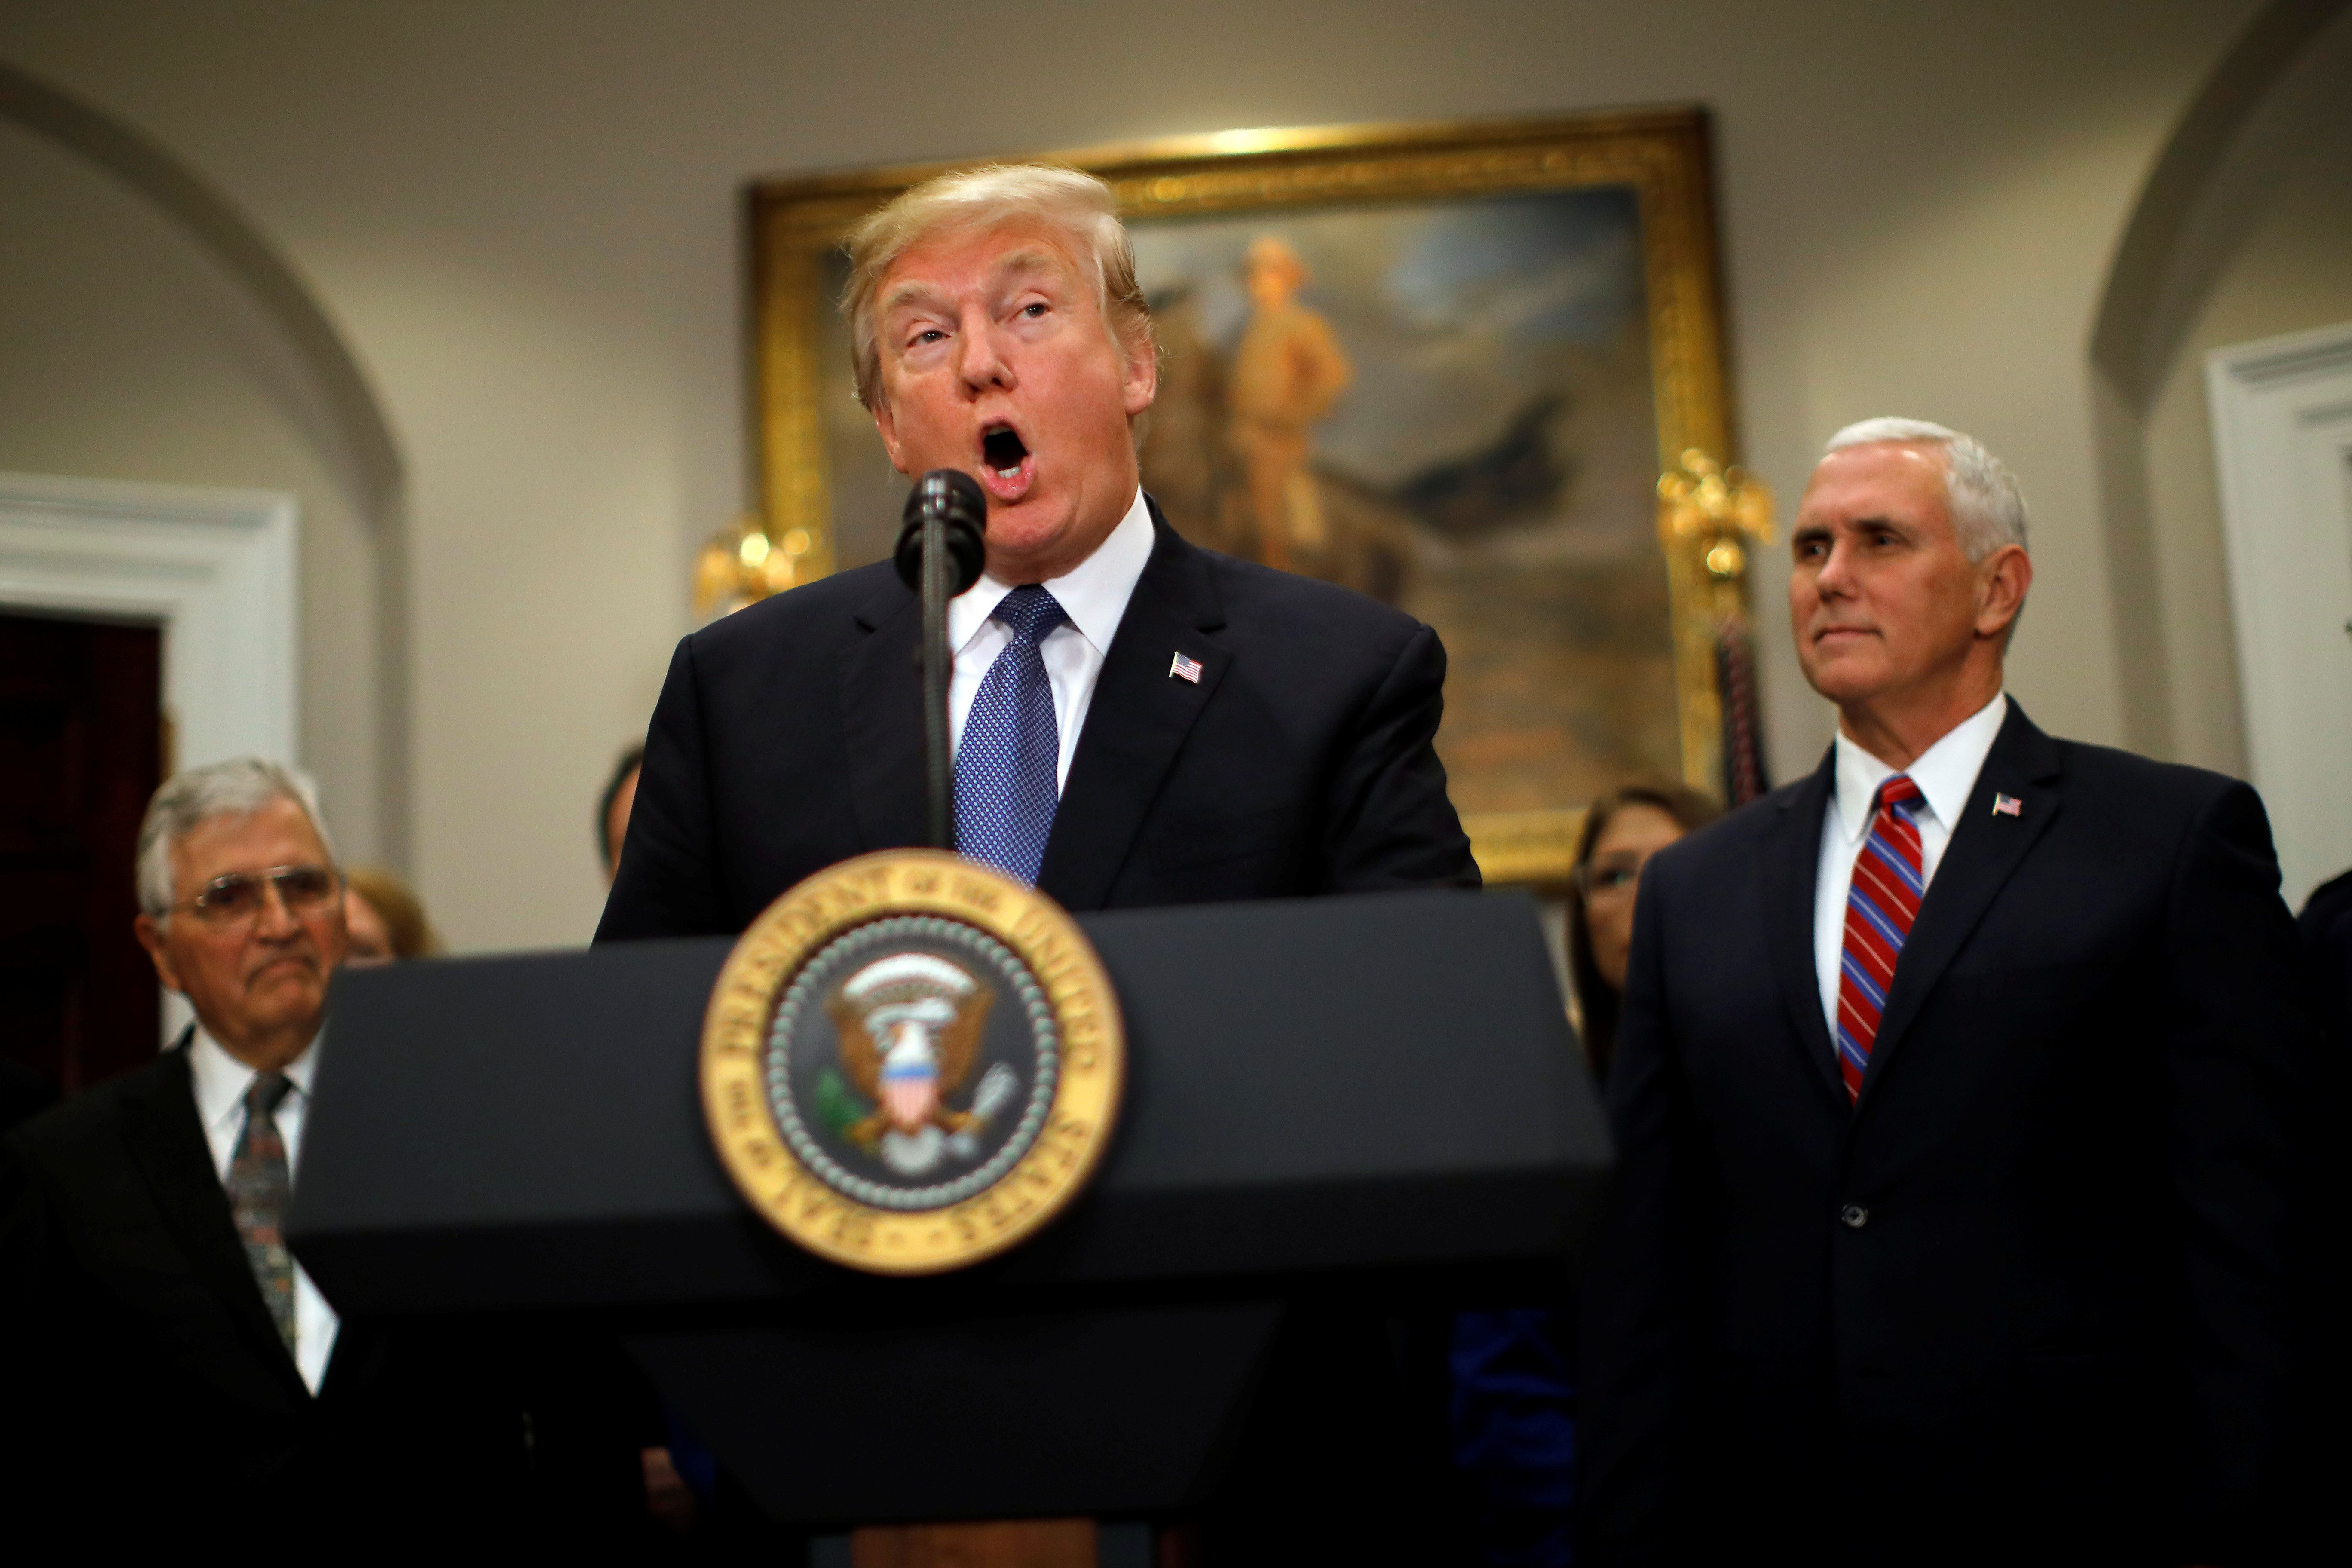 U.S. President Donald Trump and Vice President Mike Pence participate in a signing ceremony for Space Policy Directive at the White House in Washington D.C., U.S. December 11, 2017. REUTERS/Carlos Barria